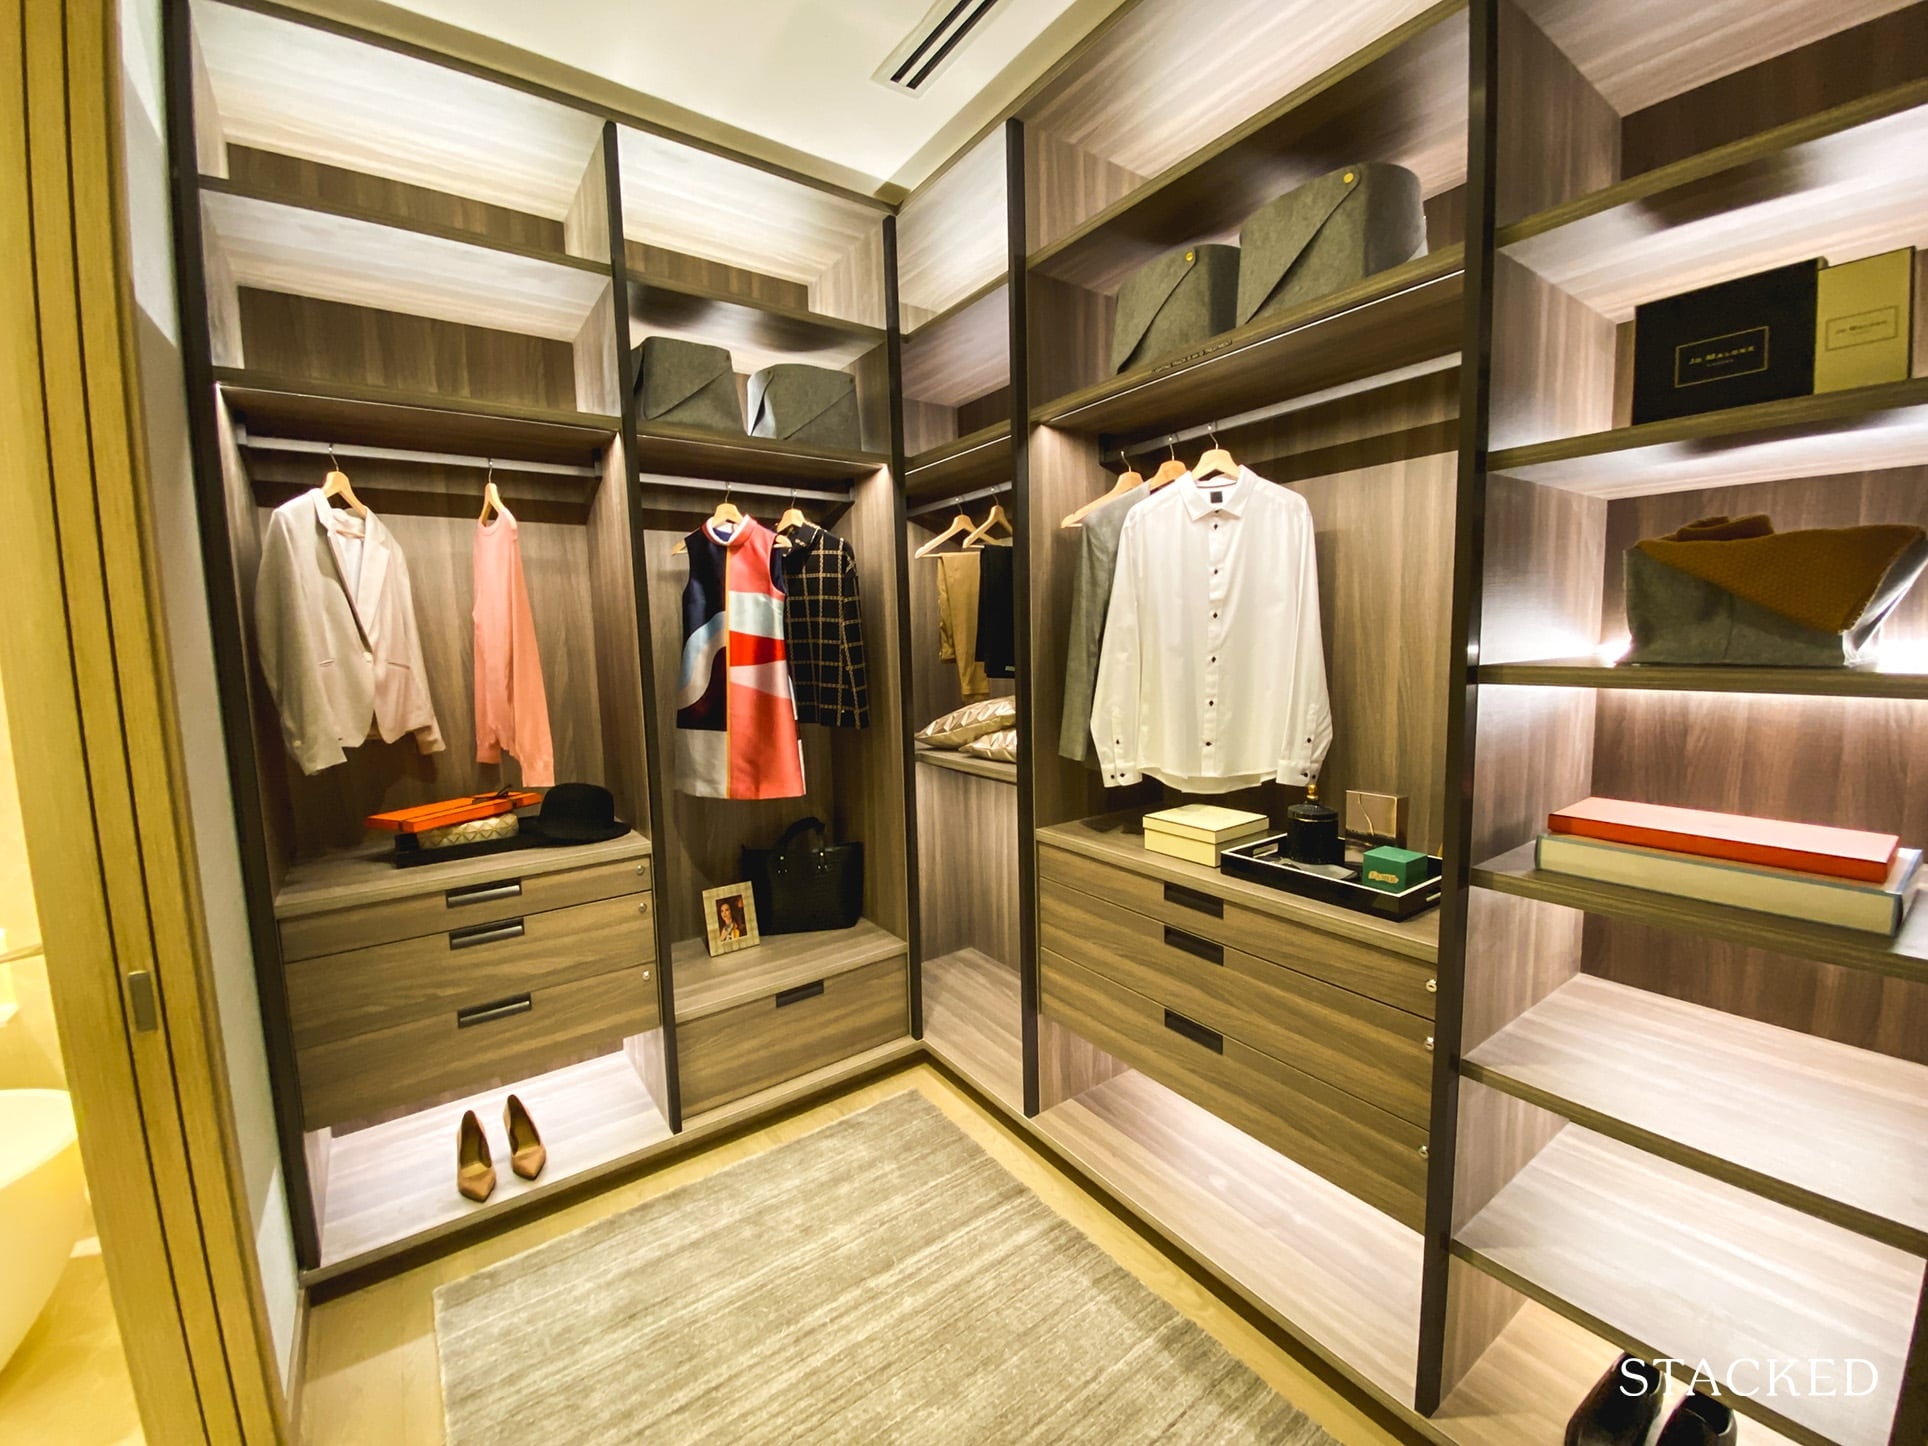 the avenir 4 bedroom walk in wardrobe